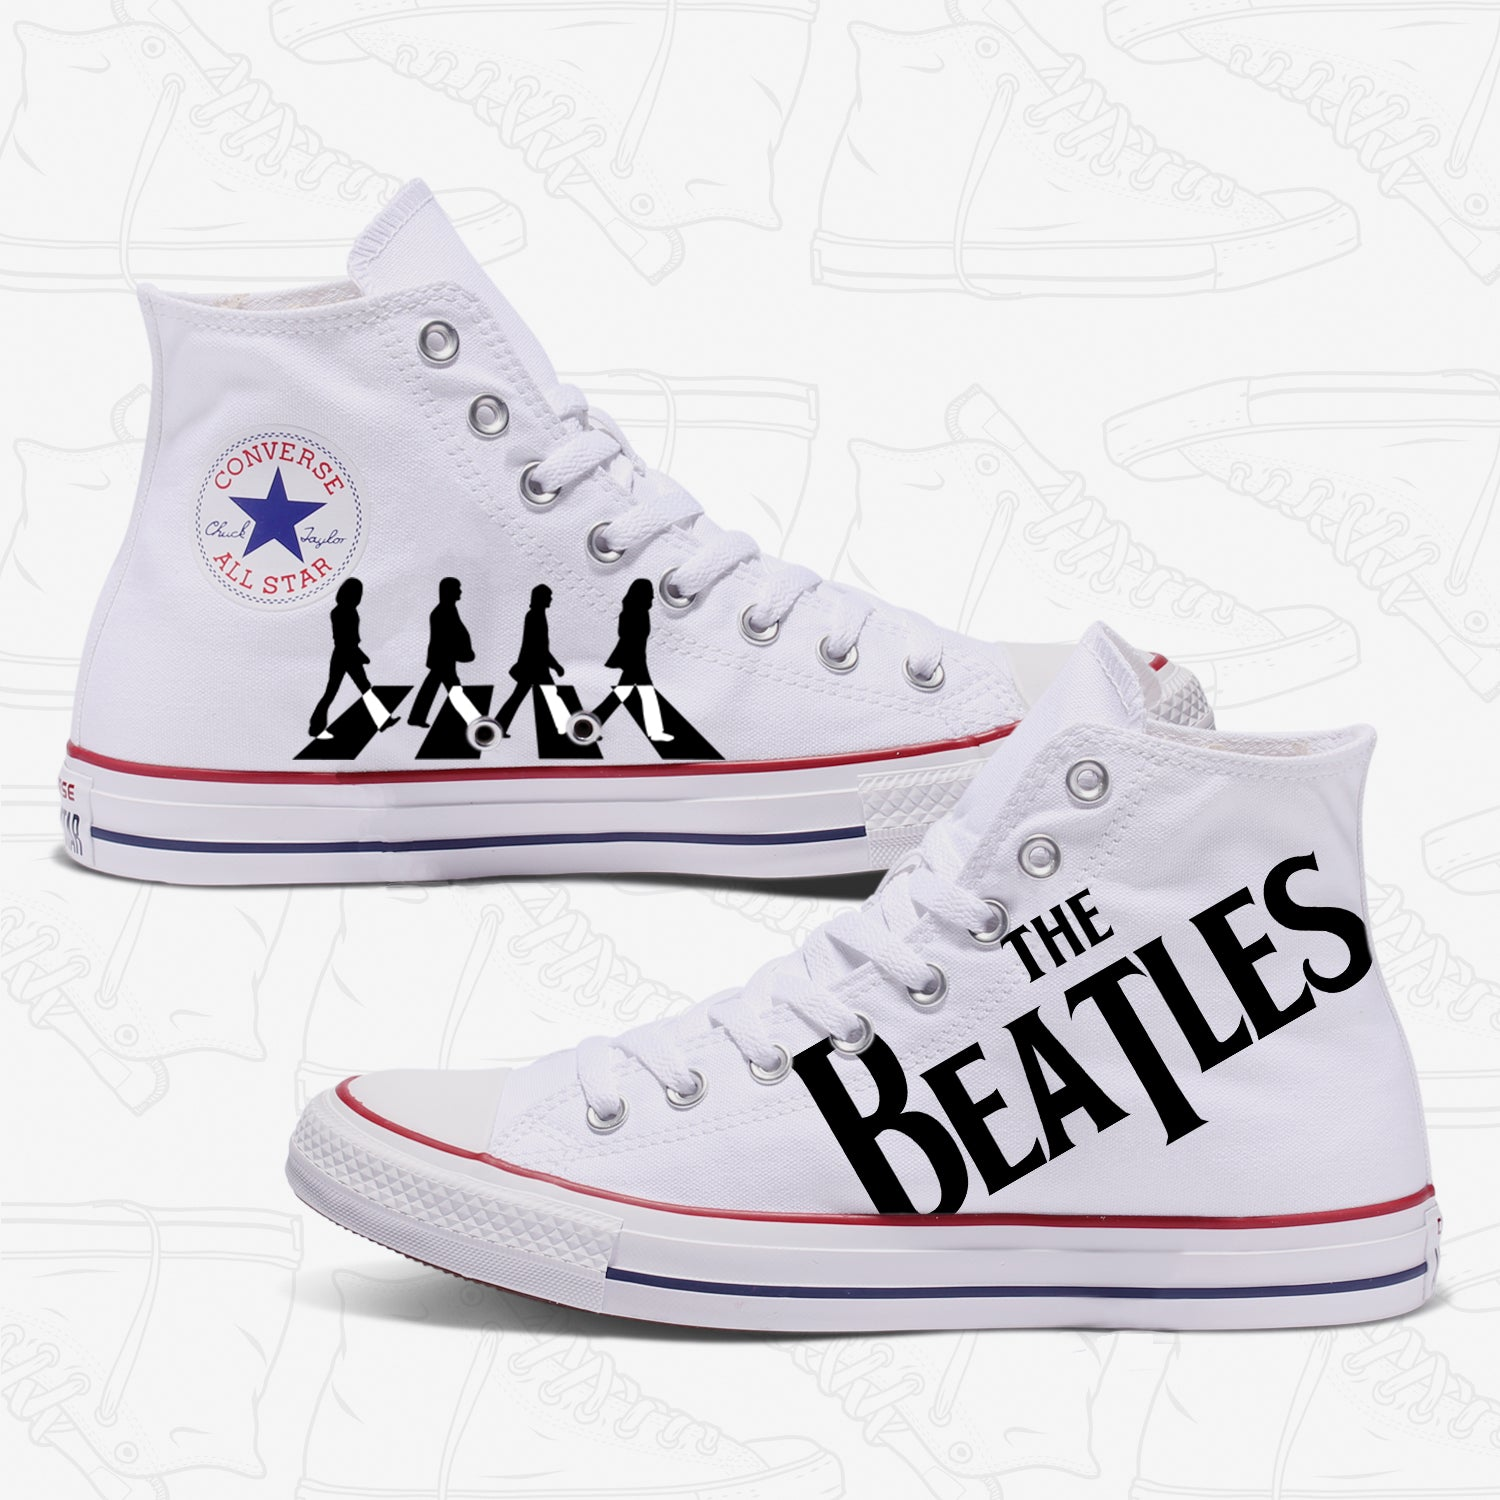 The Beatles Custom Converse